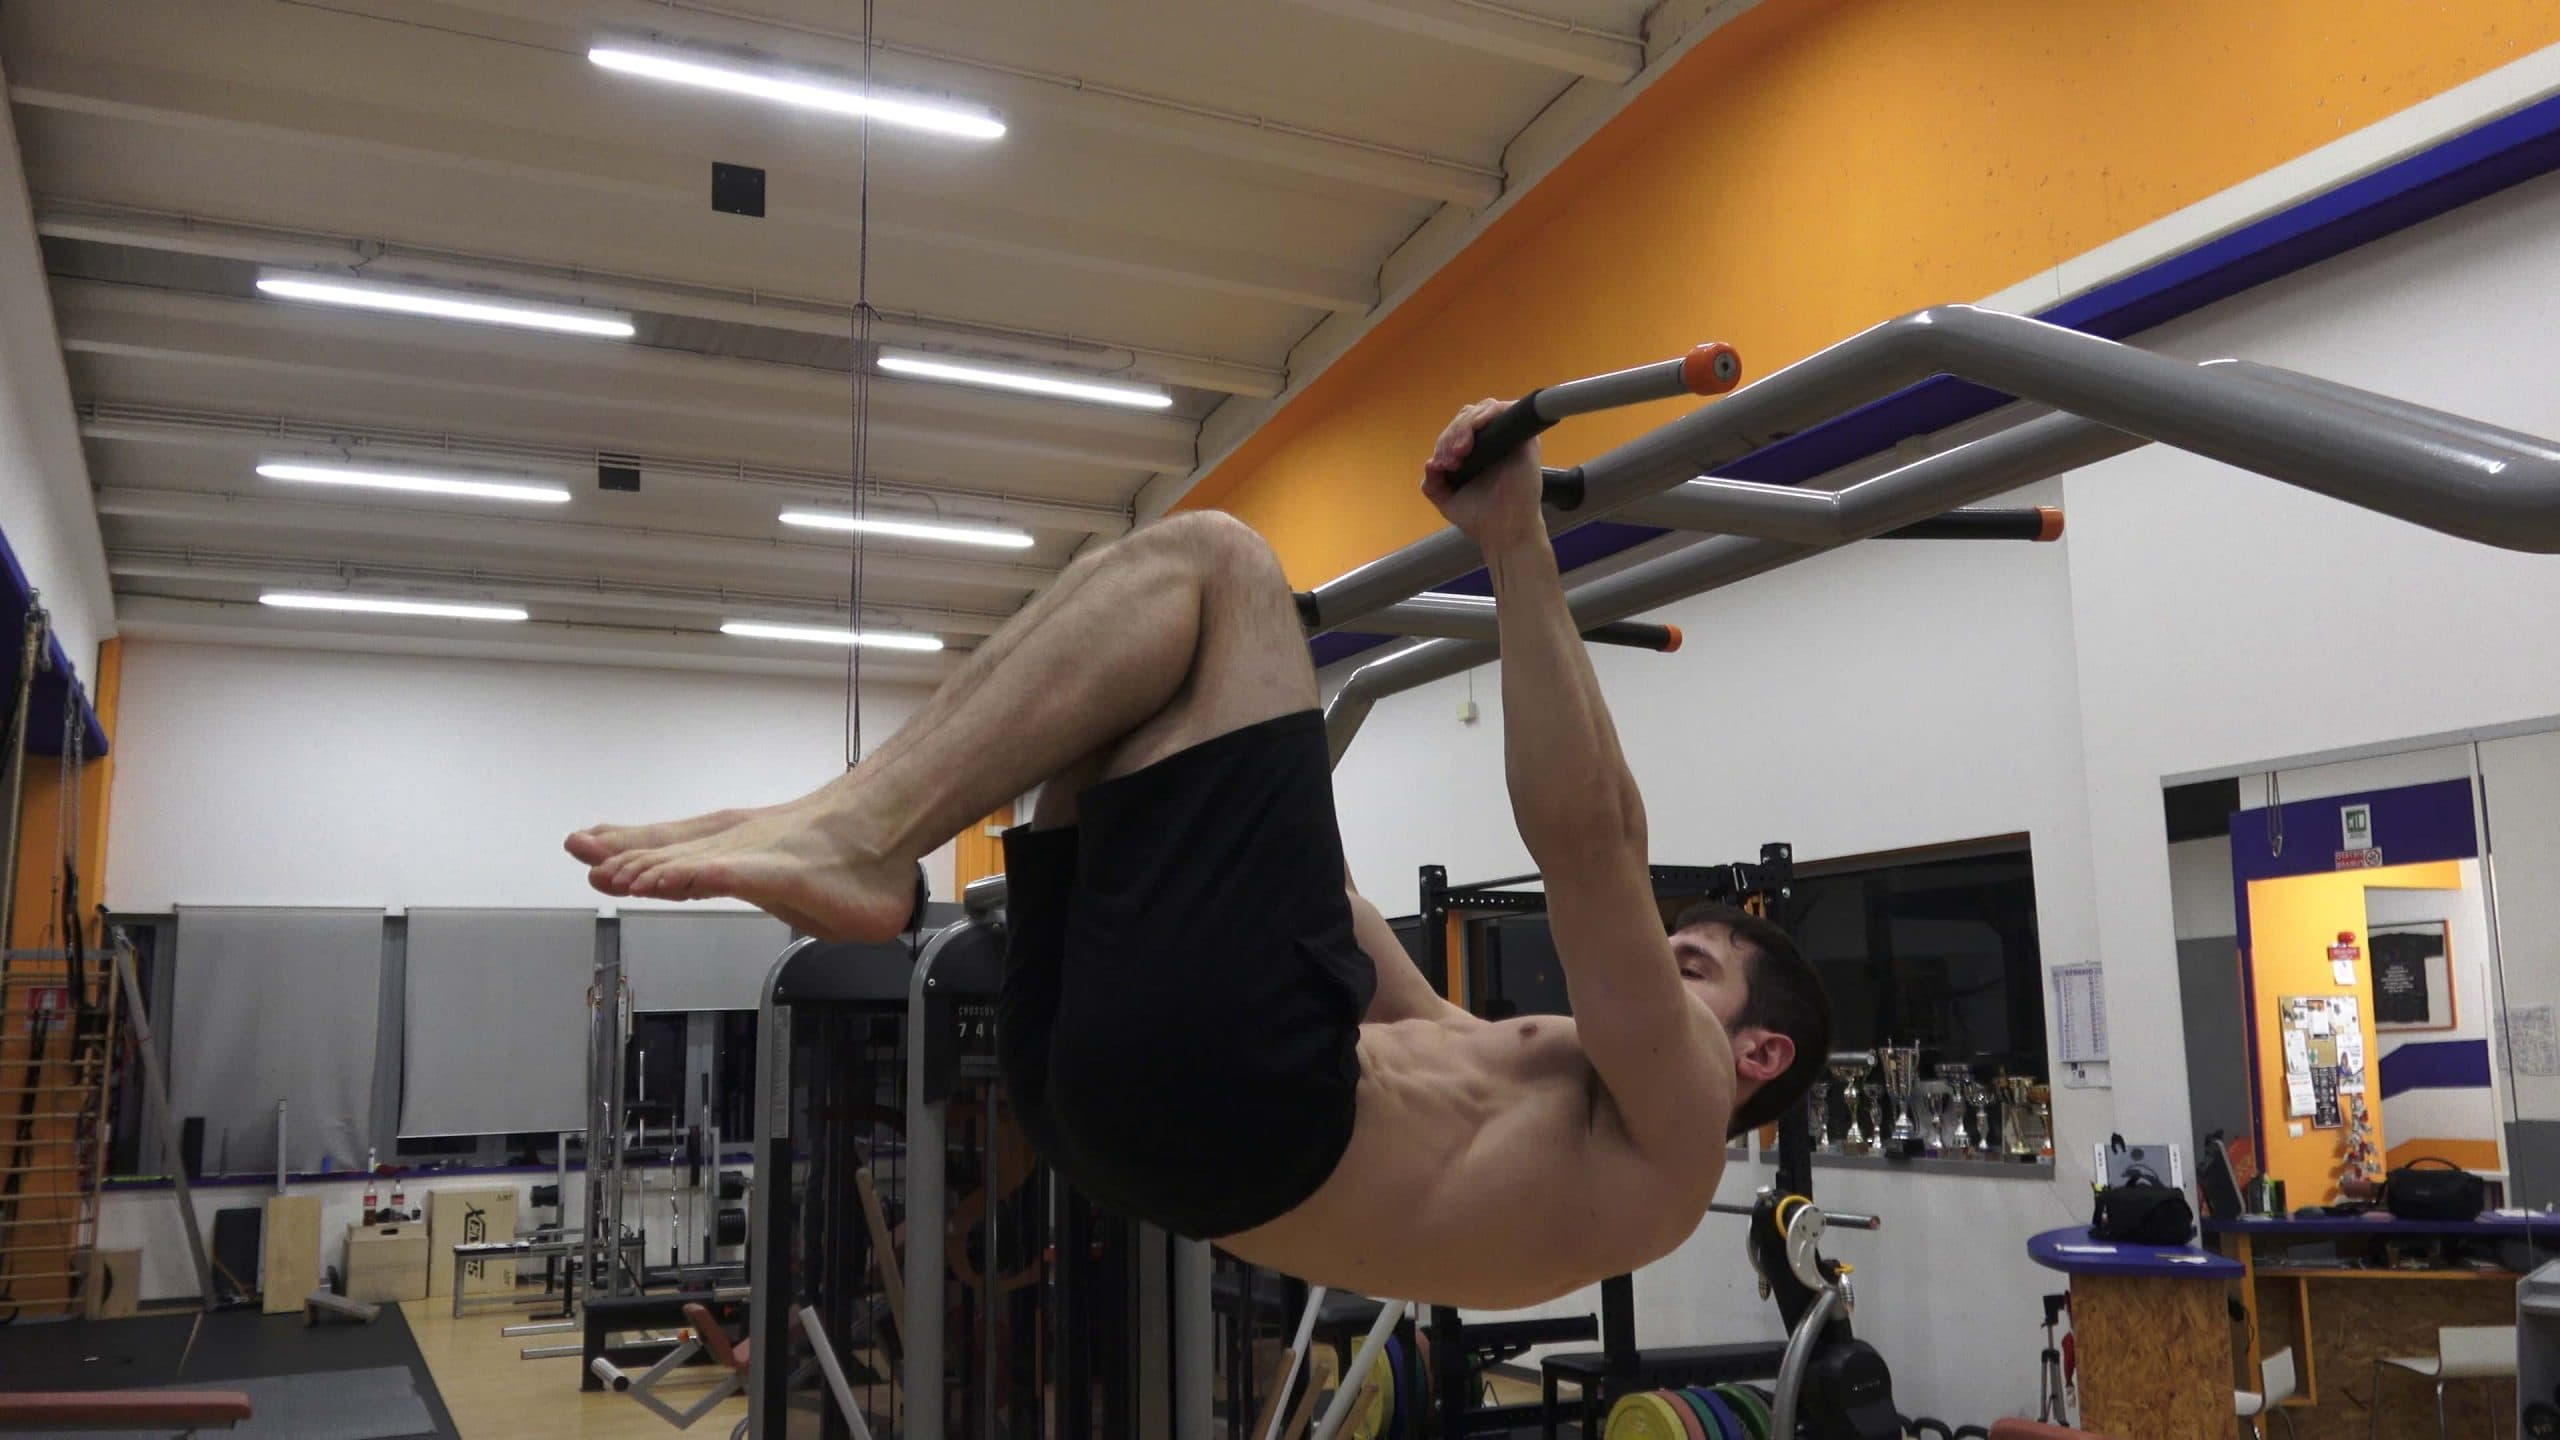 Alessandro Mainente esegue un Advanced Tuck Front Lever